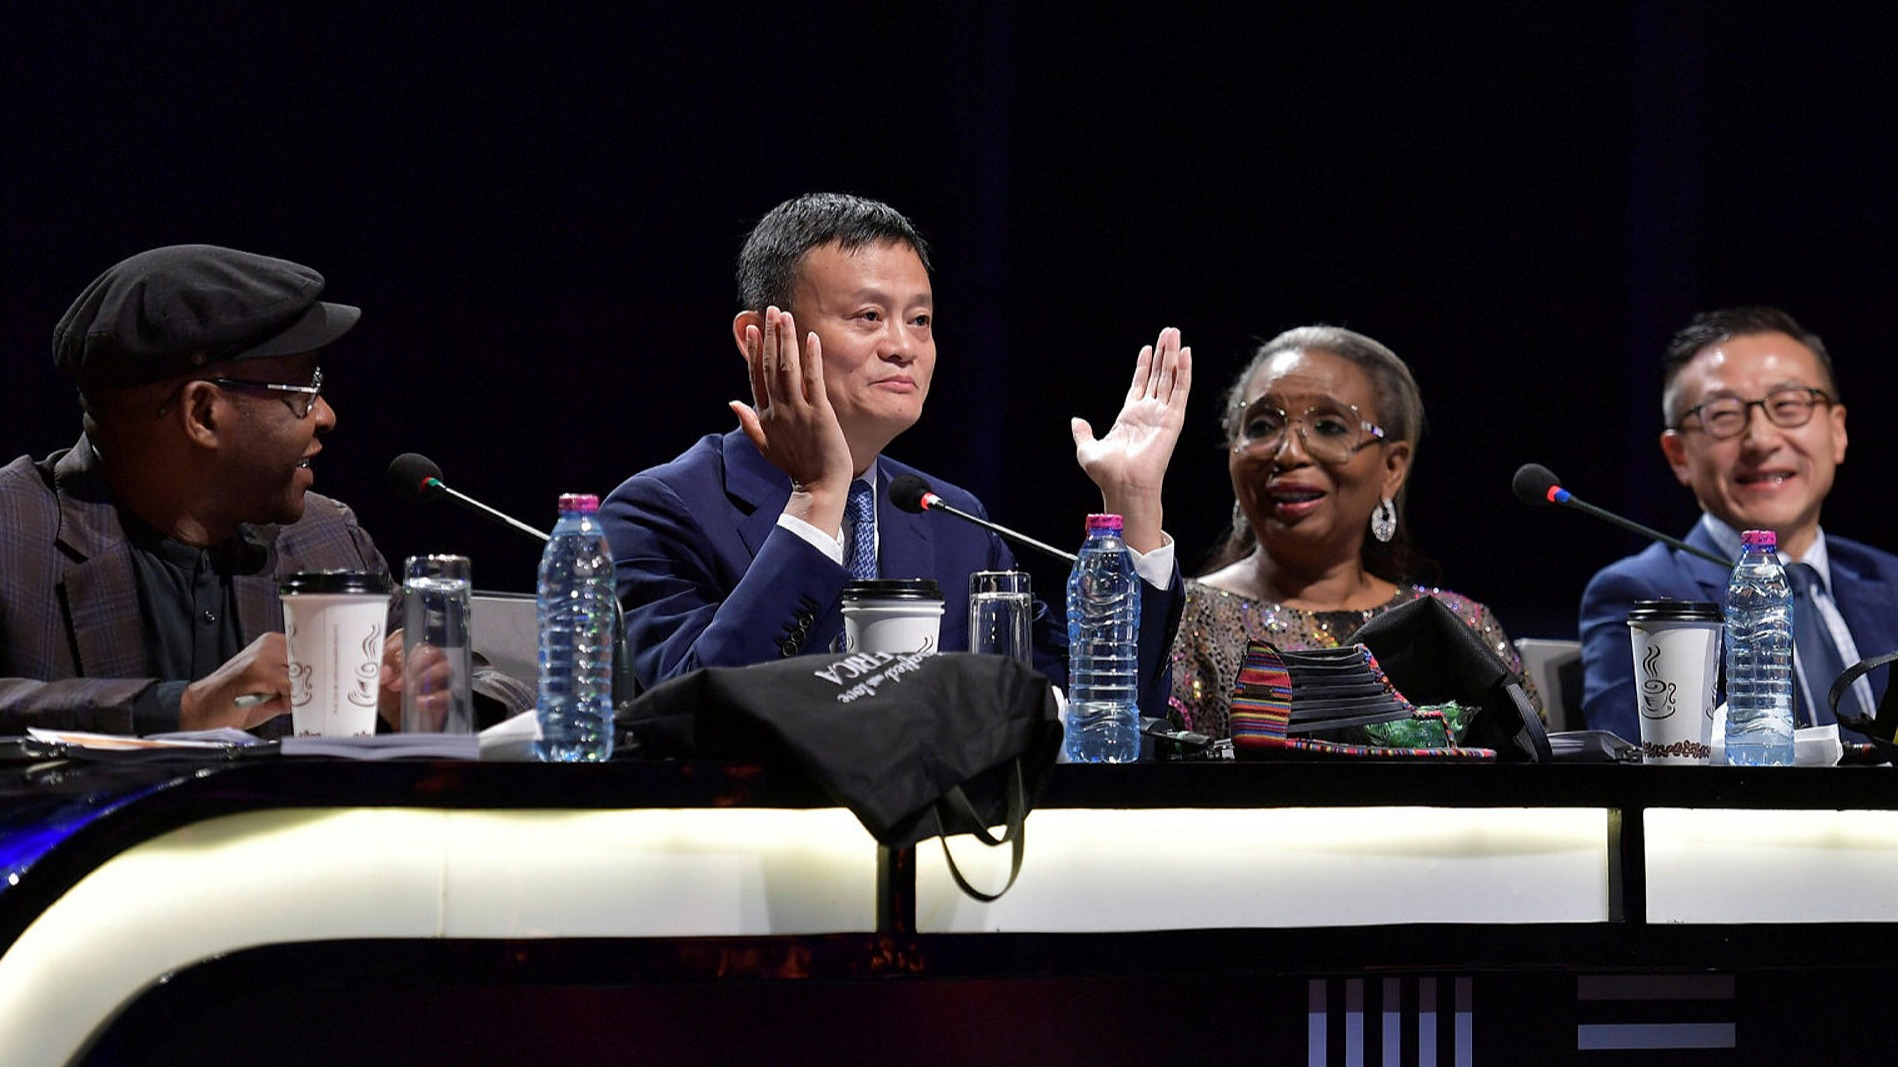 Jack Ma judging the show.